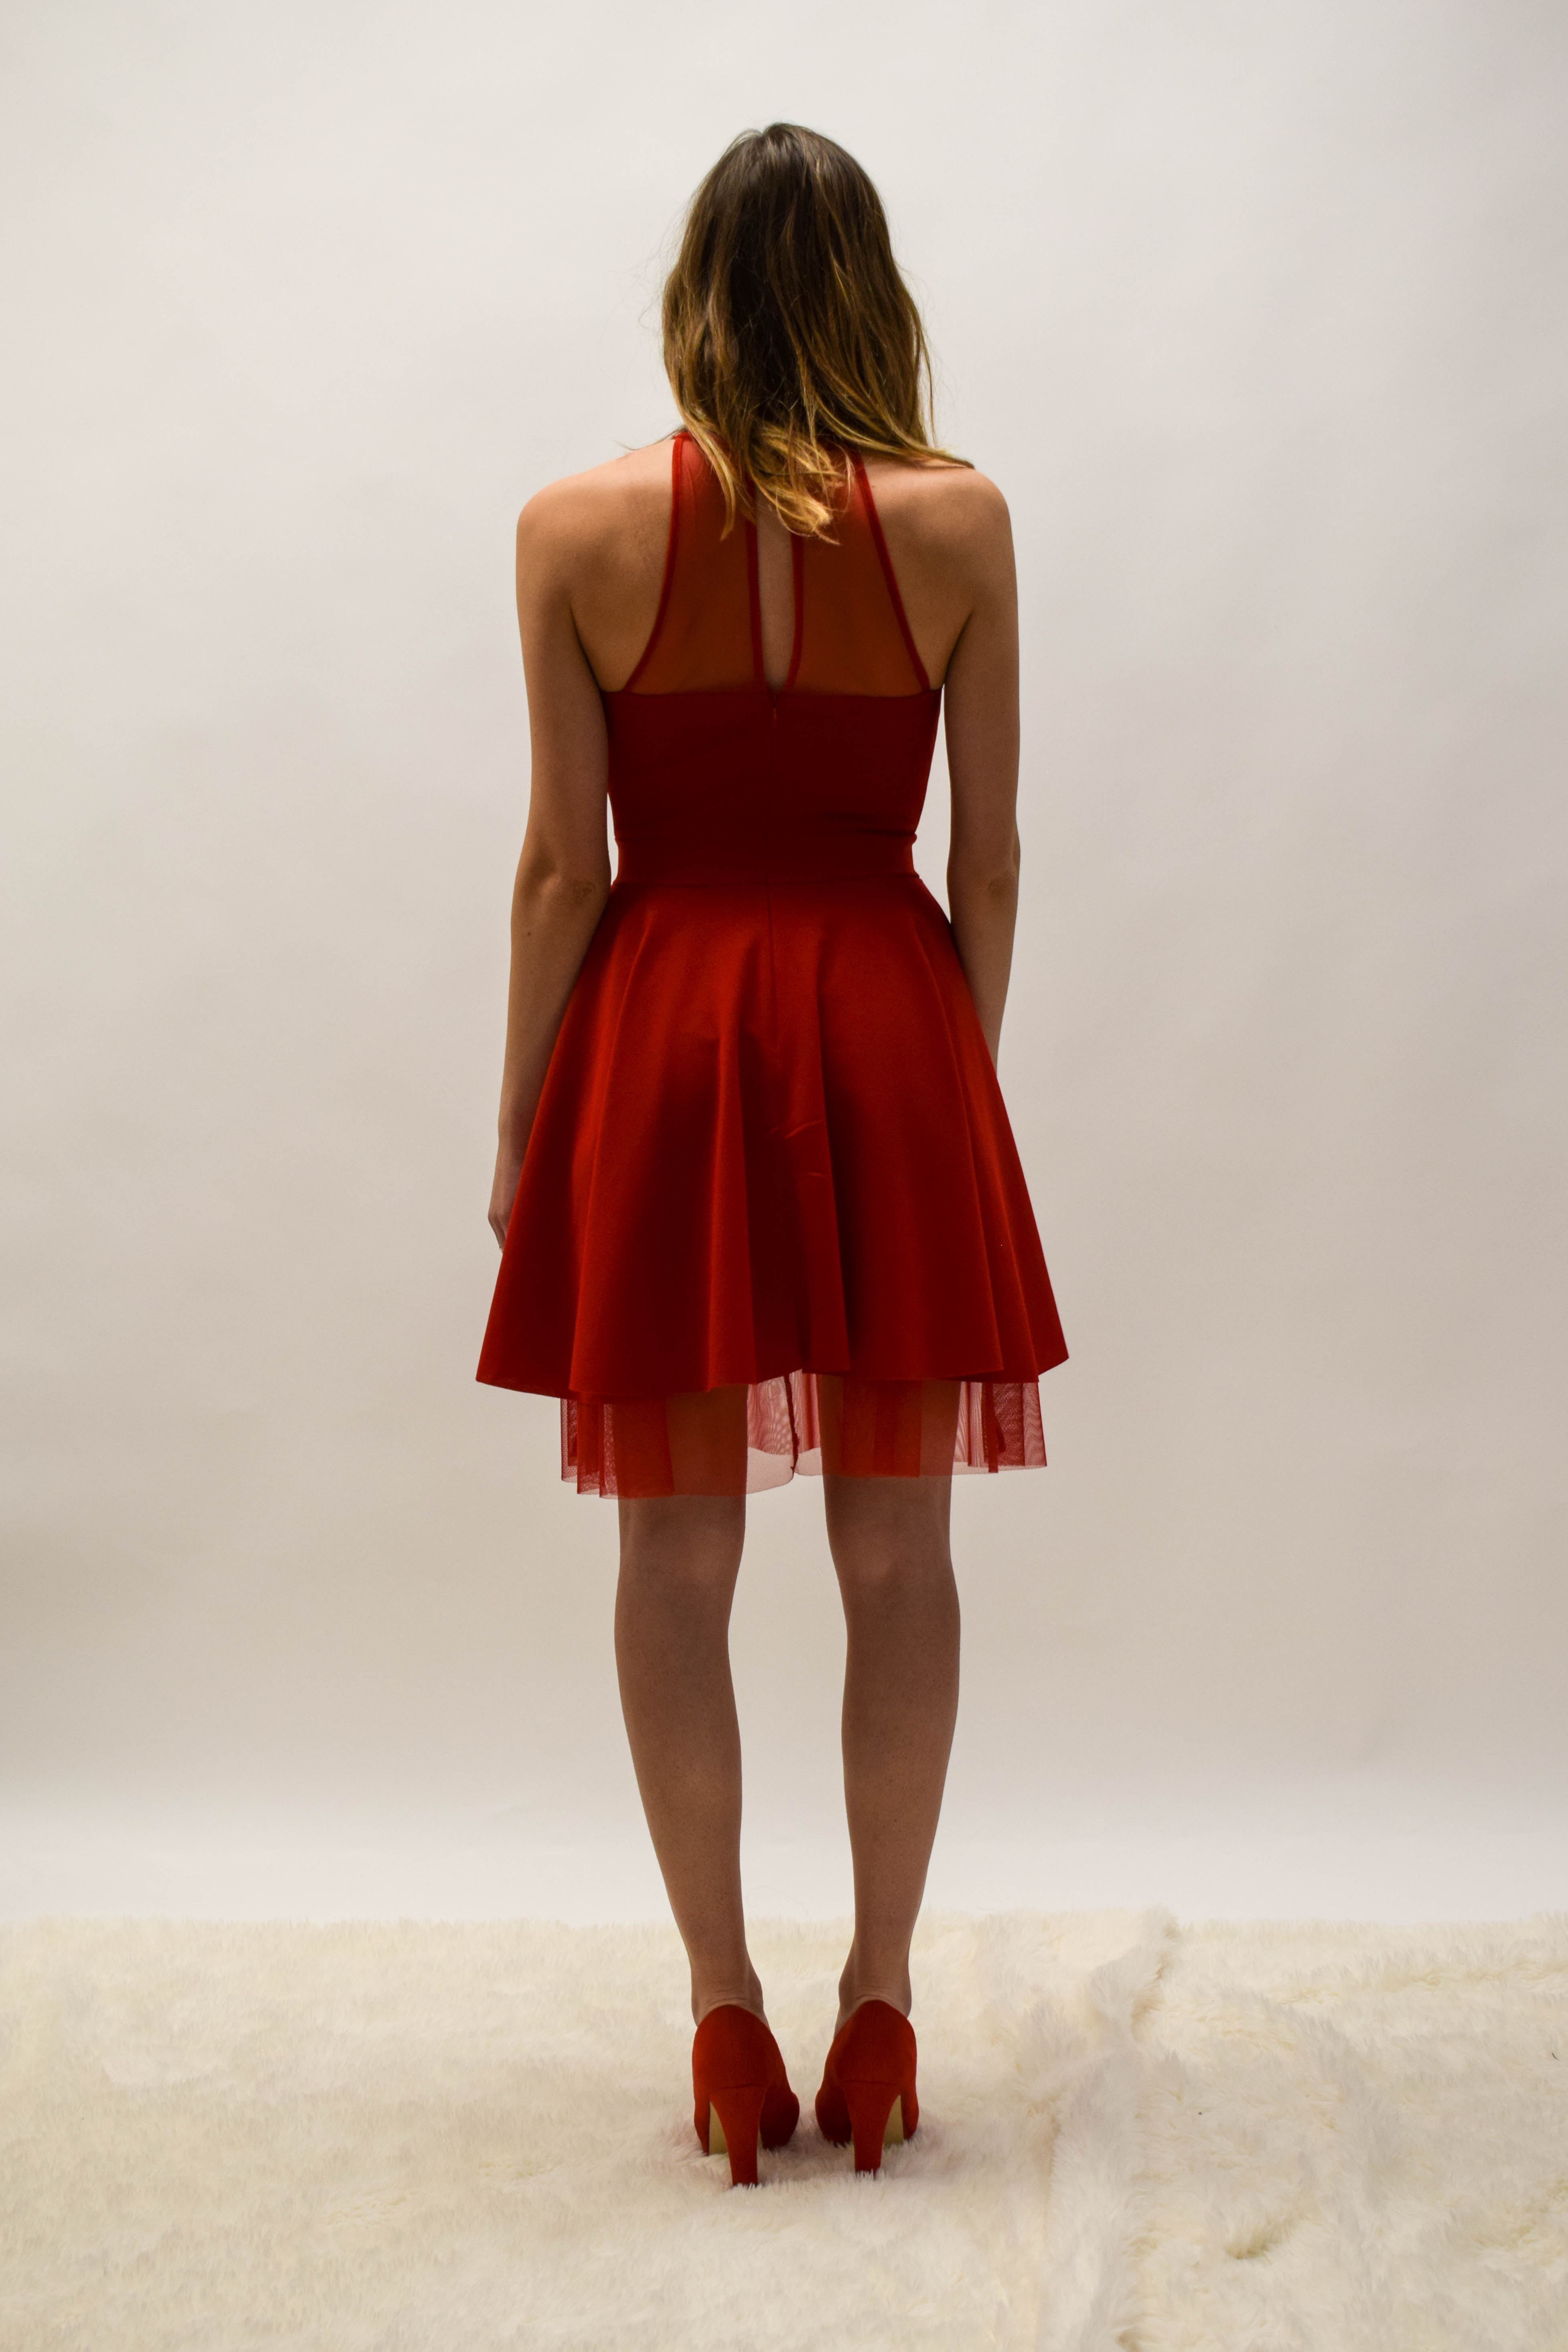 Partykleid Rot